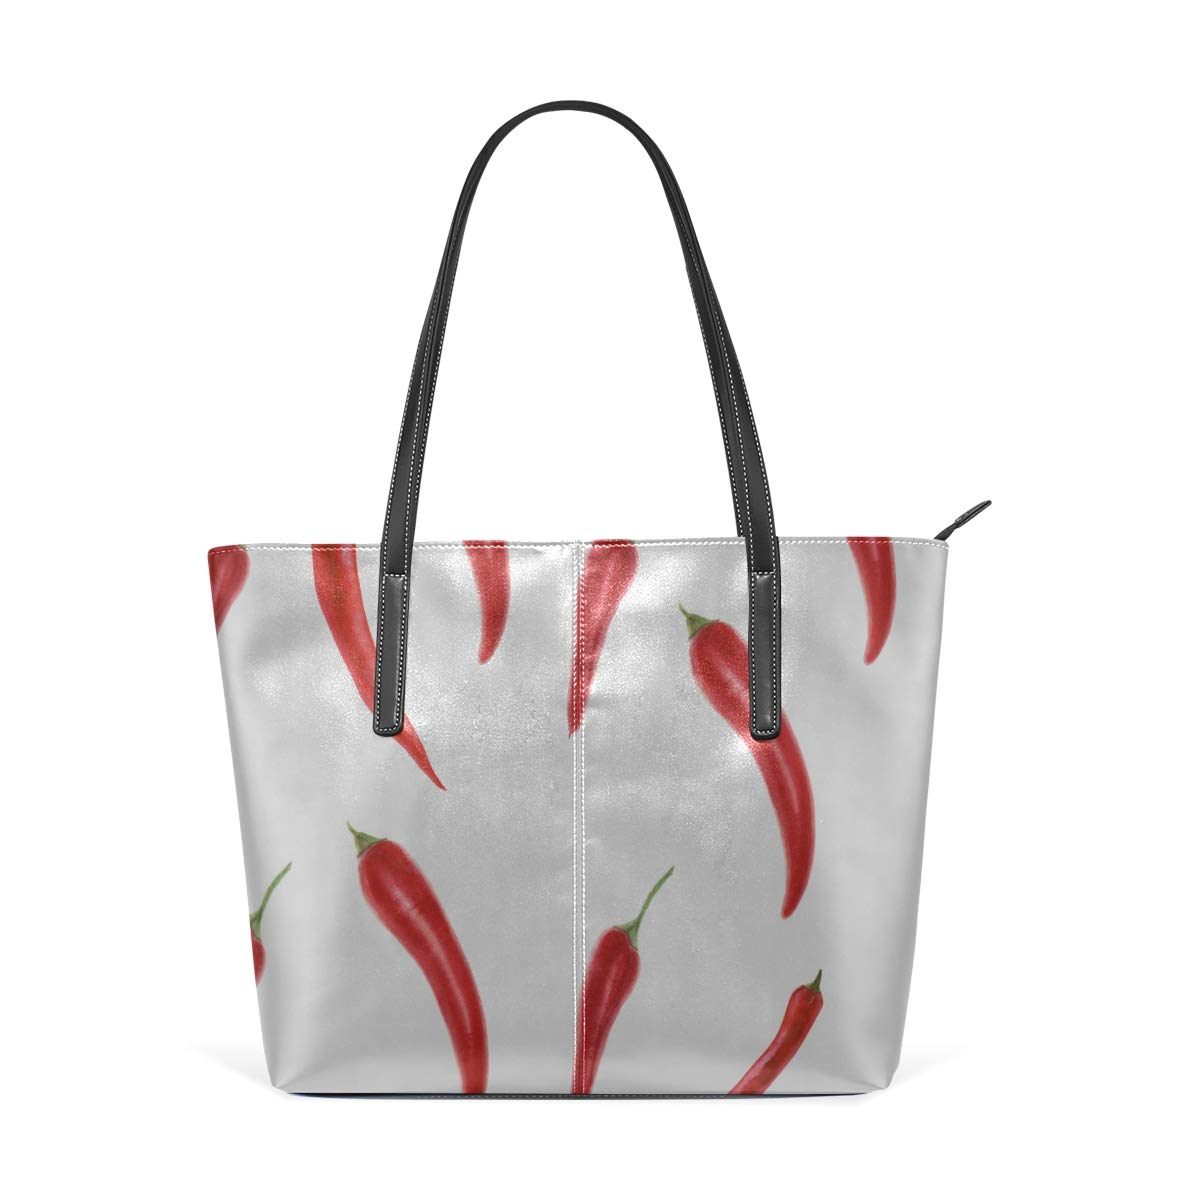 0192bf2aadad Amazon.com: Laptop Tote Bag Red Hot Chili Pepper Hand Drawn Large ...